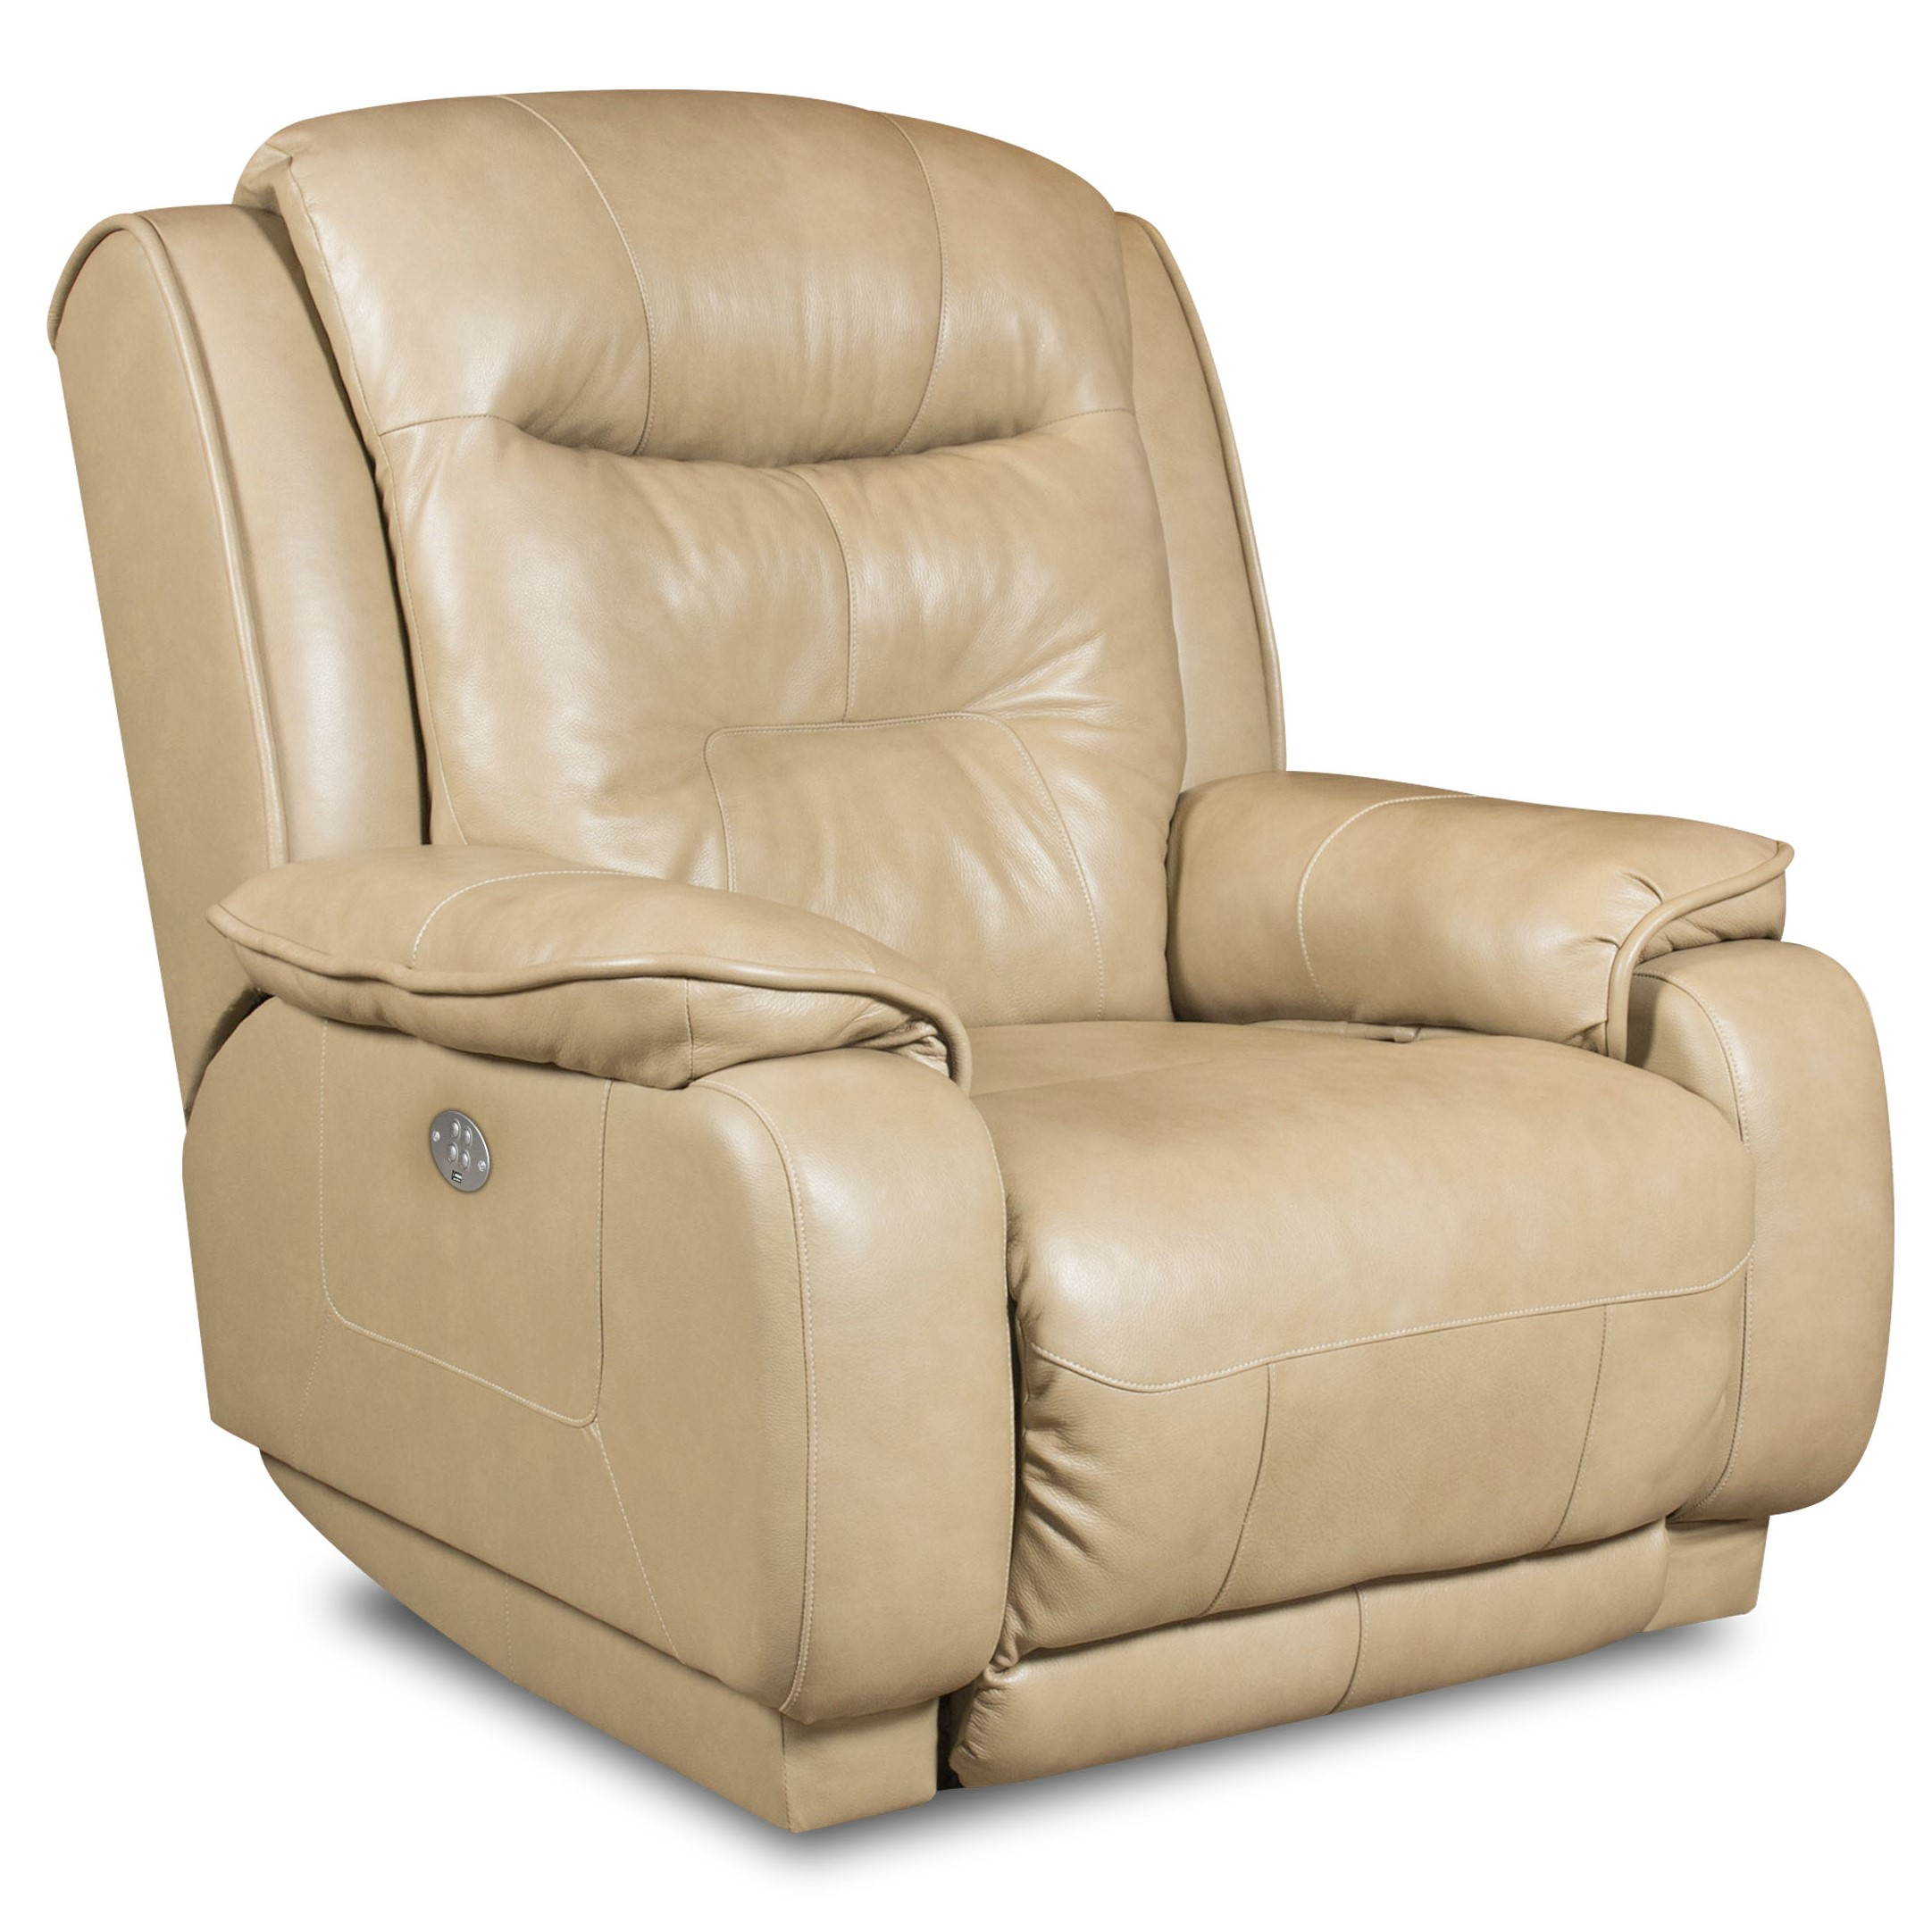 Crescent Rocker Recliner 140 Fabrics And Sofas And Sectionals